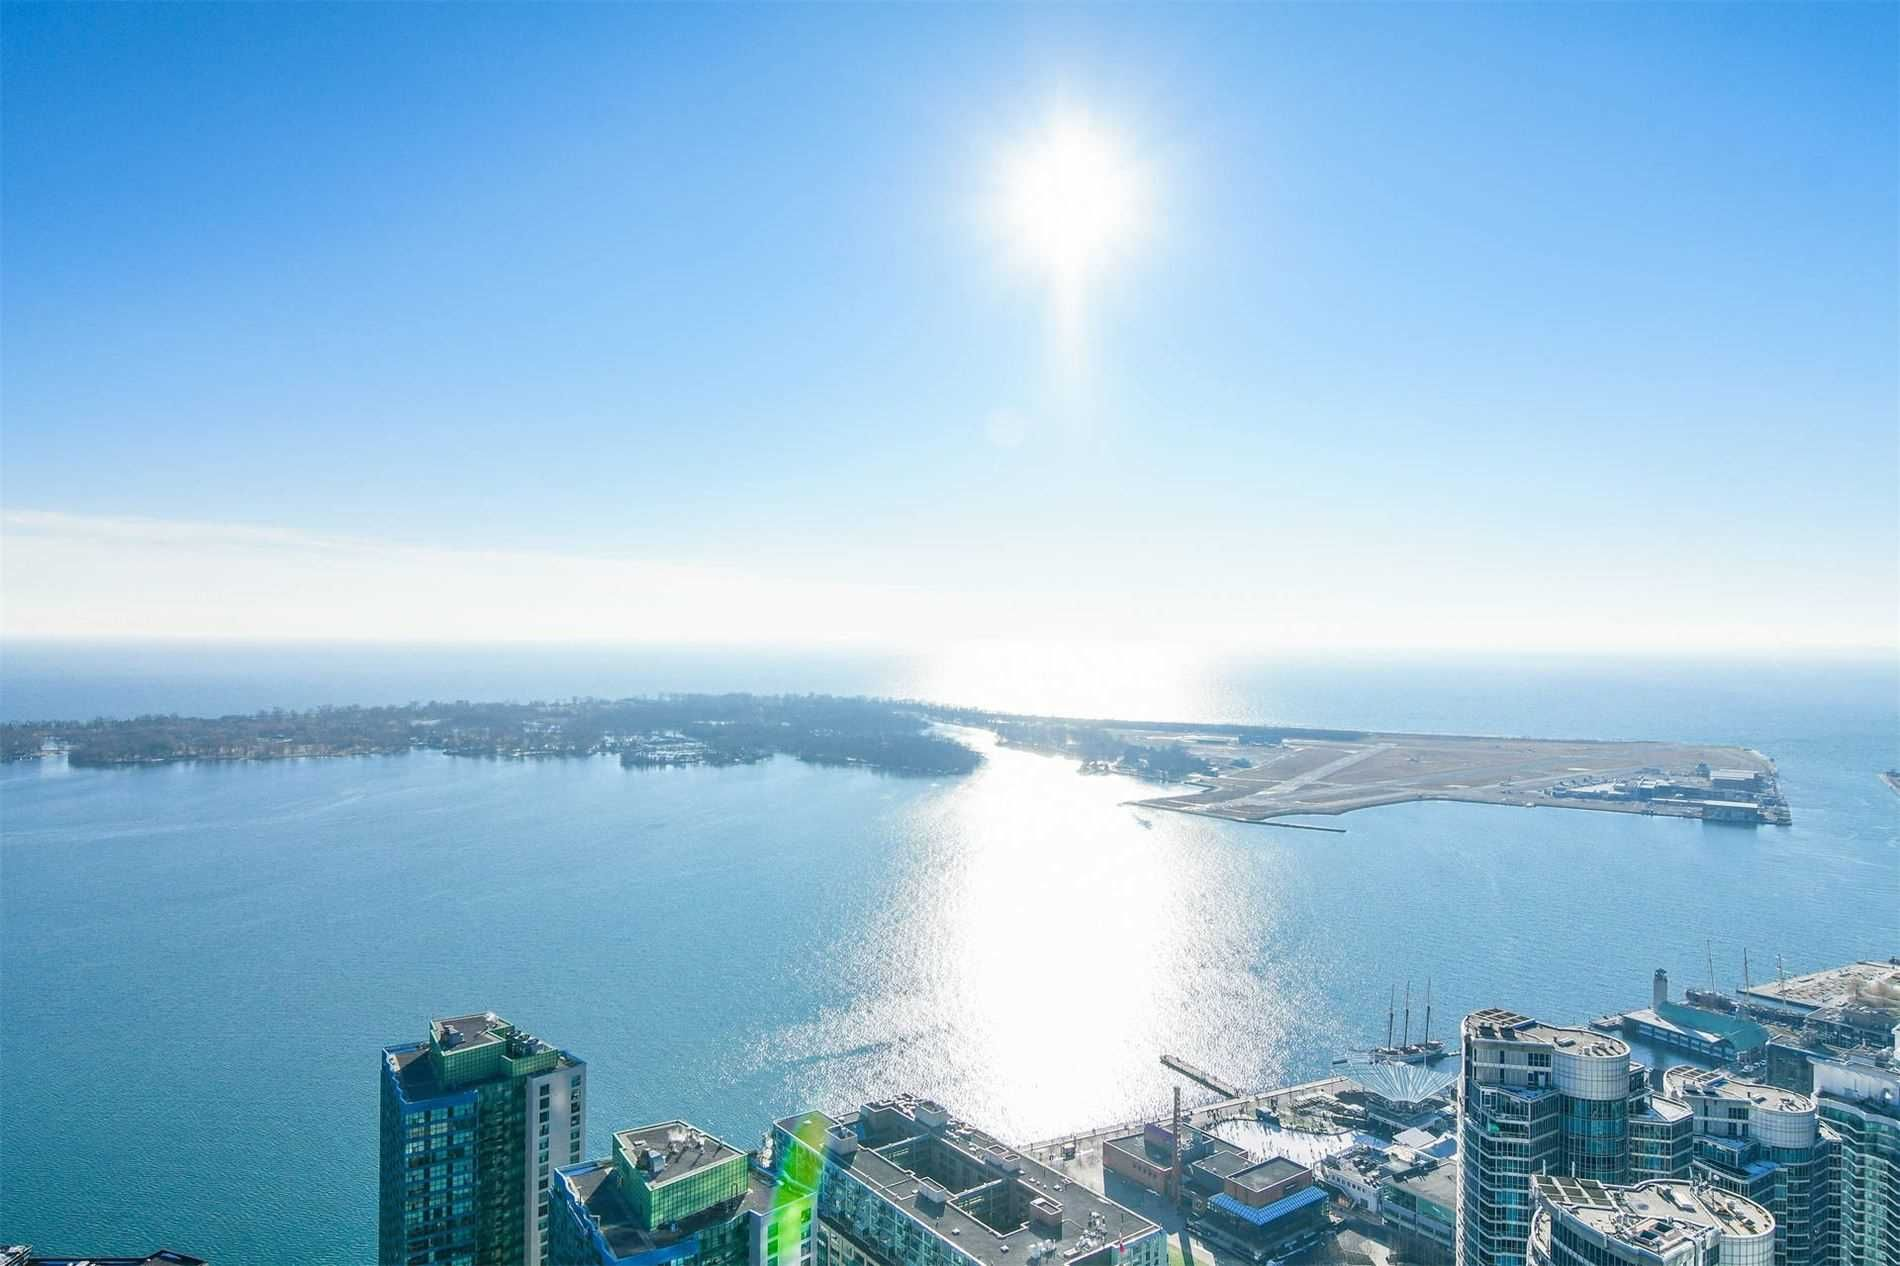 88 Harbour St, unit 6610 for rent in Toronto - image #2